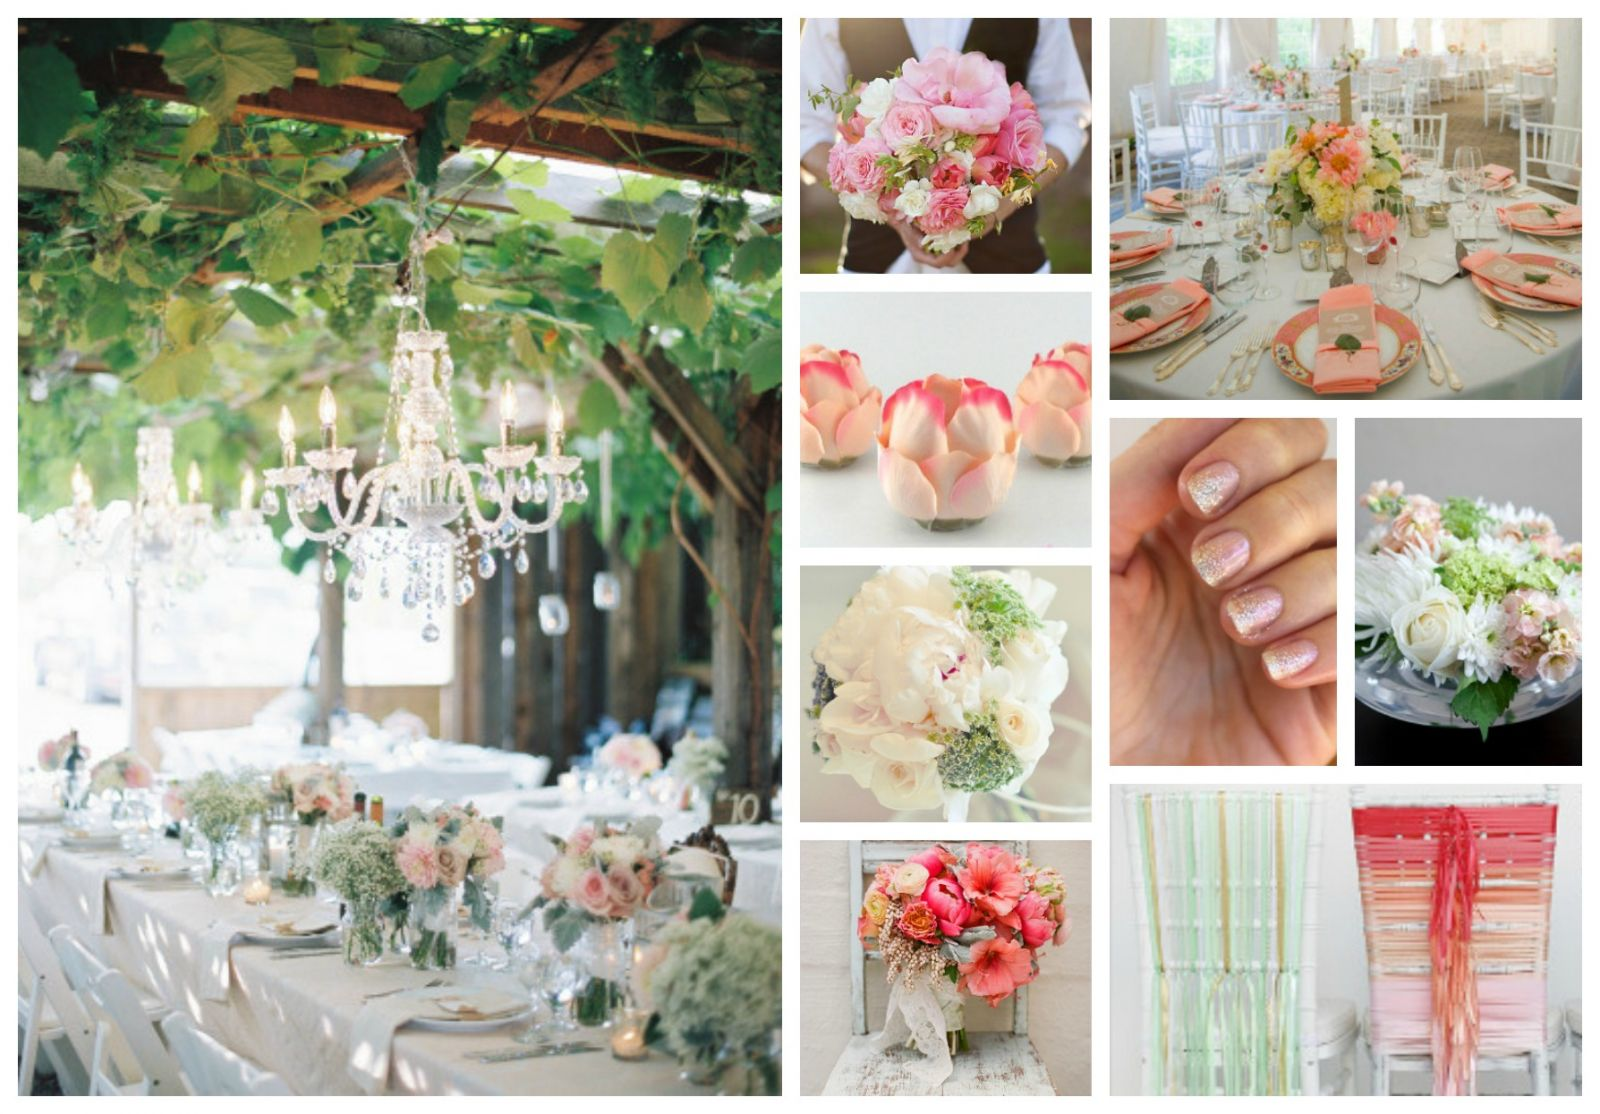 Wedding Color Schemes Mint and Pink AllFreeDIYWeddingscom